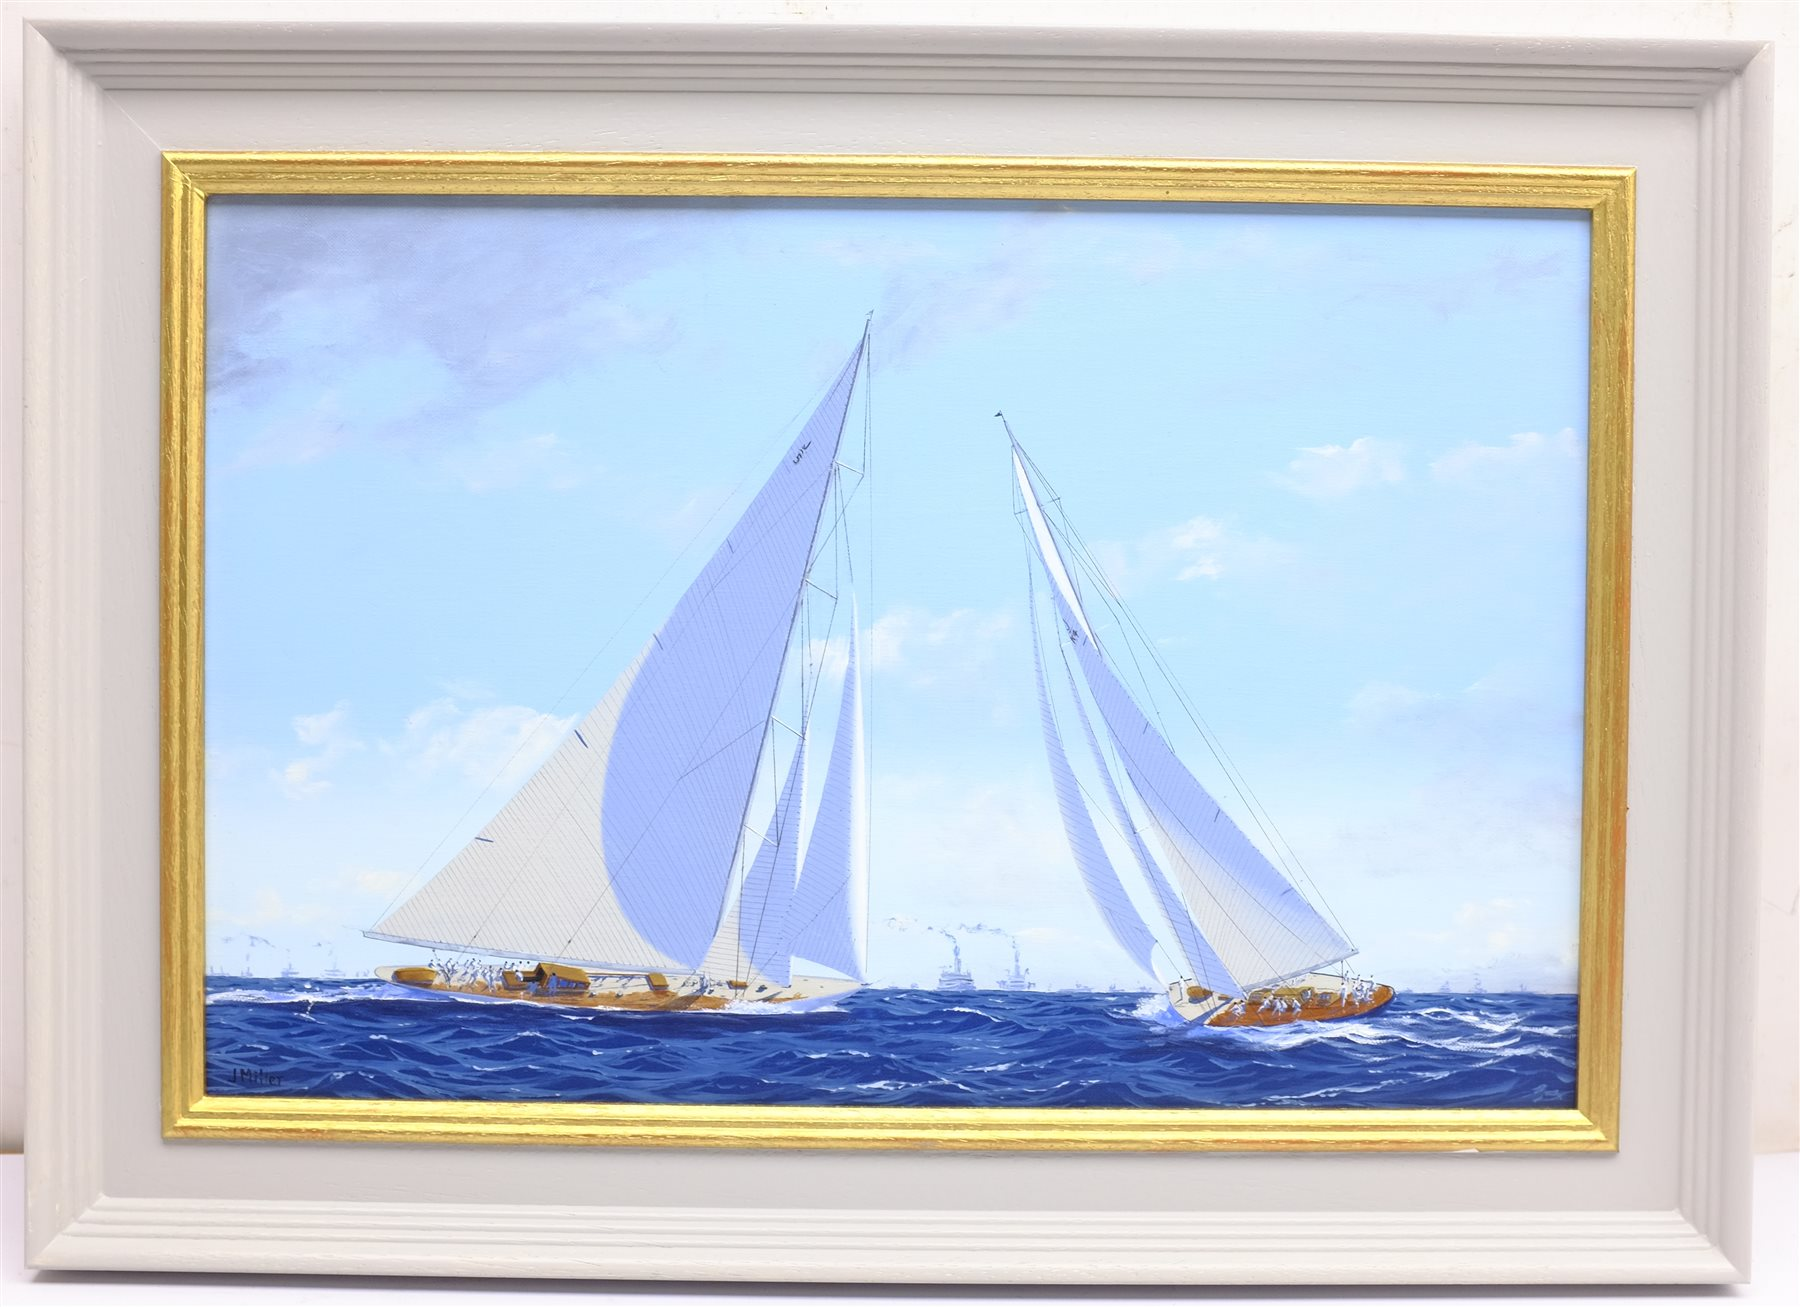 James Miller (British 1962-): 'Rainbow' & 'Endeavour' in the America's Cup Series 15th challenge 193 - Image 3 of 4